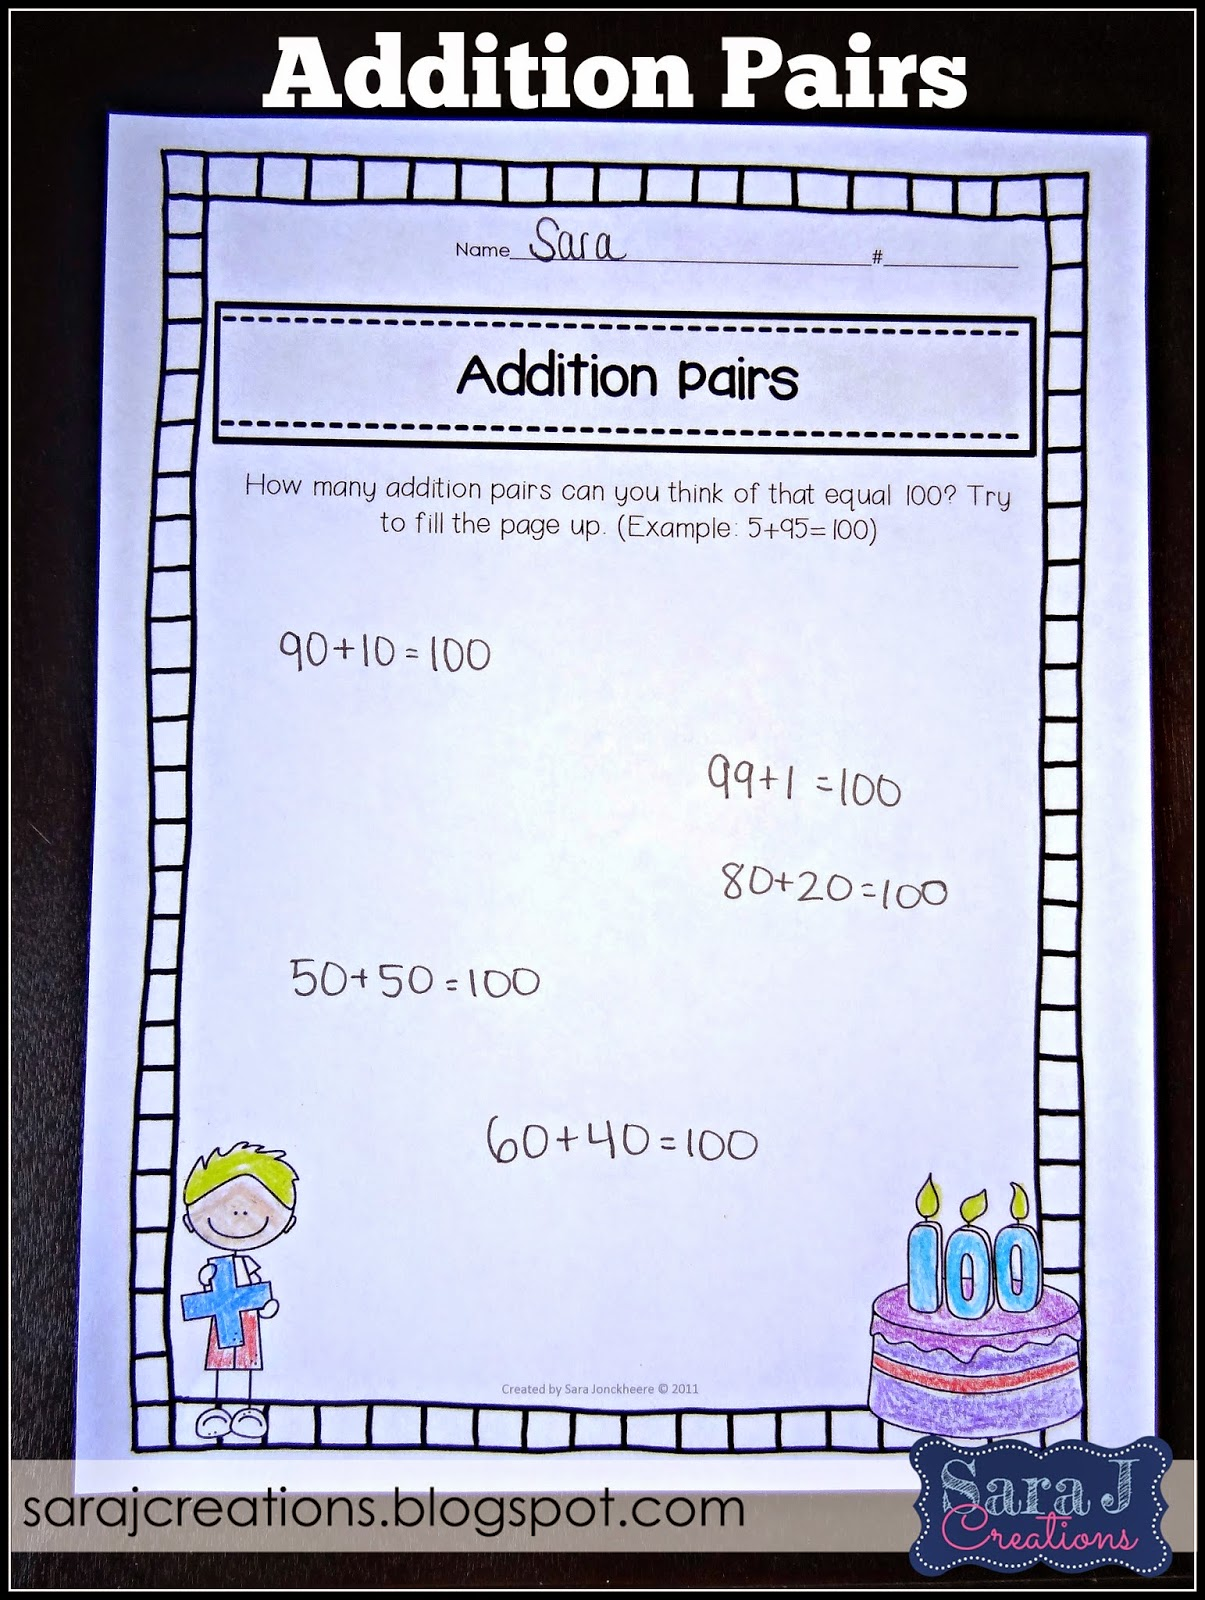 100th day of school activities, ideas and freebies!